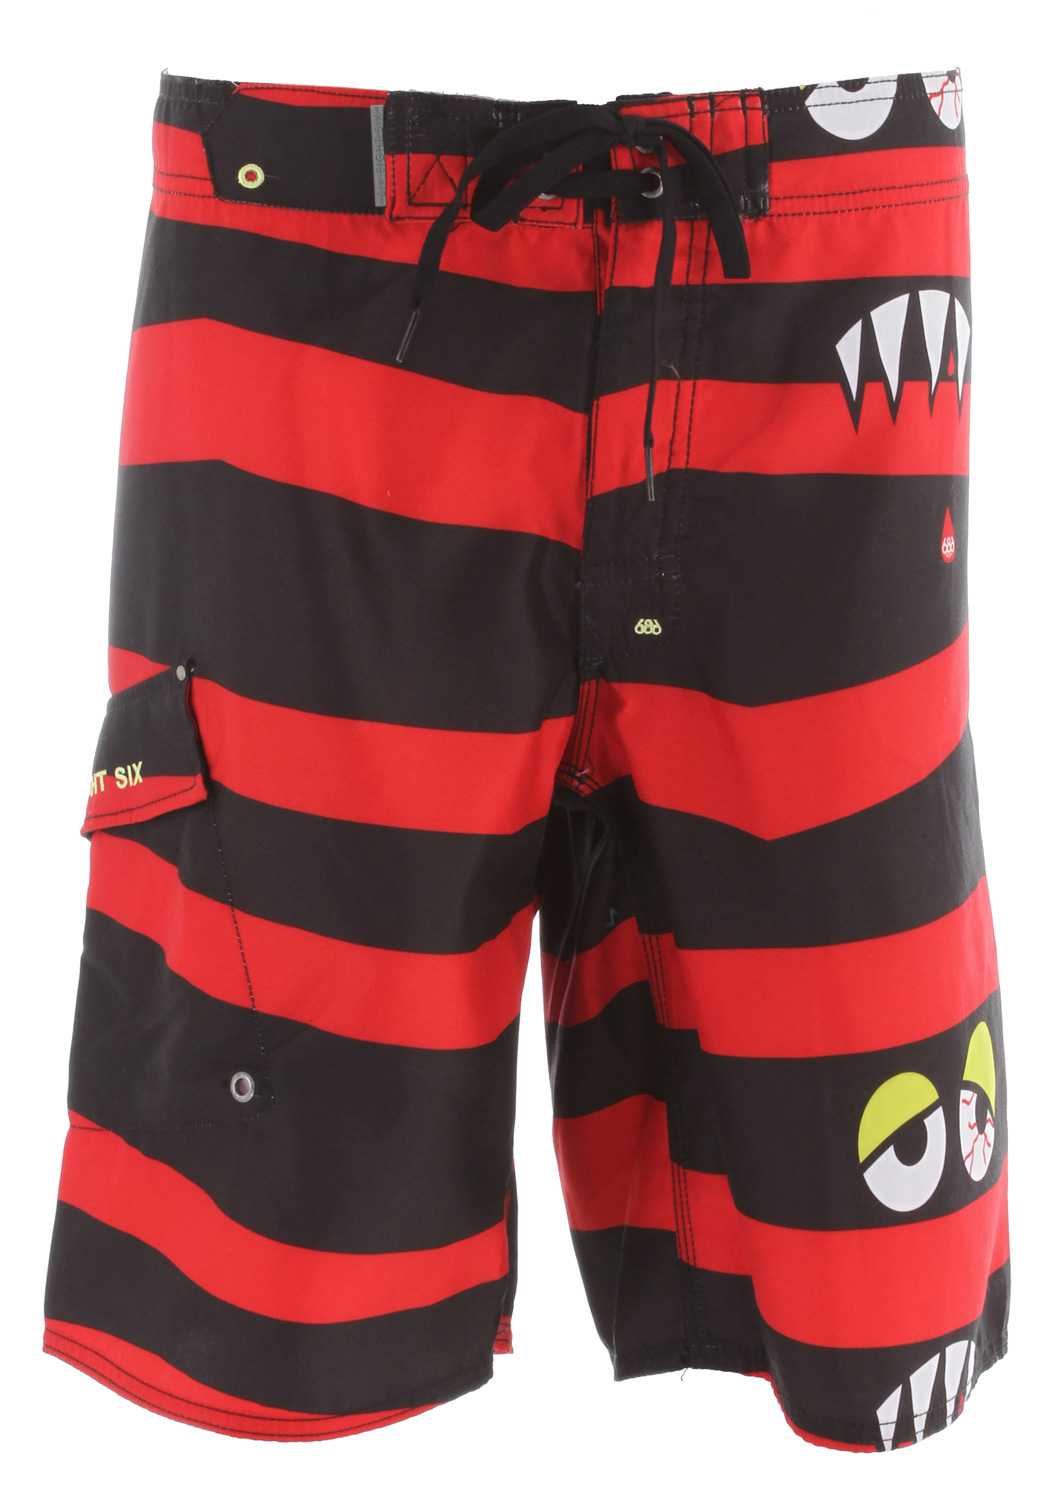 "Surf Key Features of the 686 Snaggle-Stripe Boardshorts: 100% polyester micro fiber Spandex fly gusset Waistband stash pocket Angled side leg pocket 22"" average outseam - $37.95"